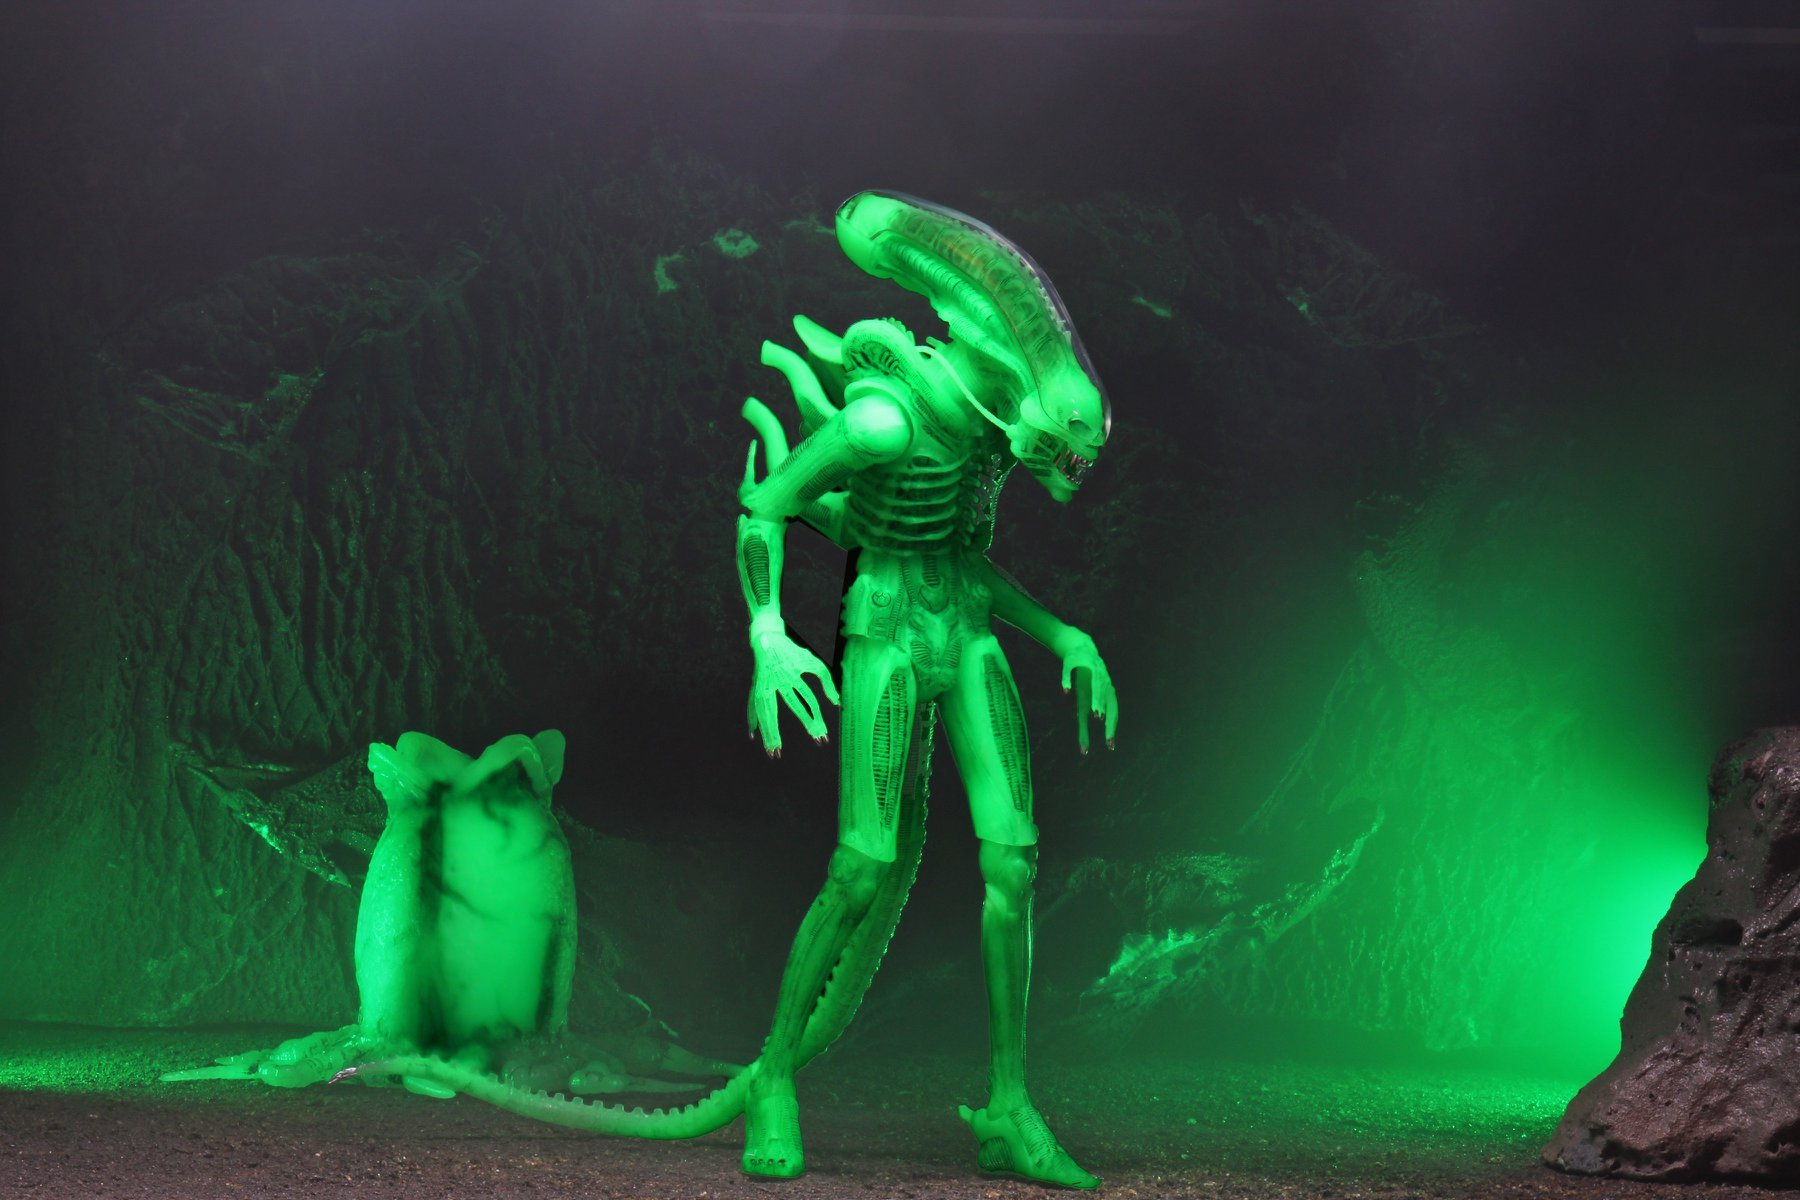 Alien and egg glowing